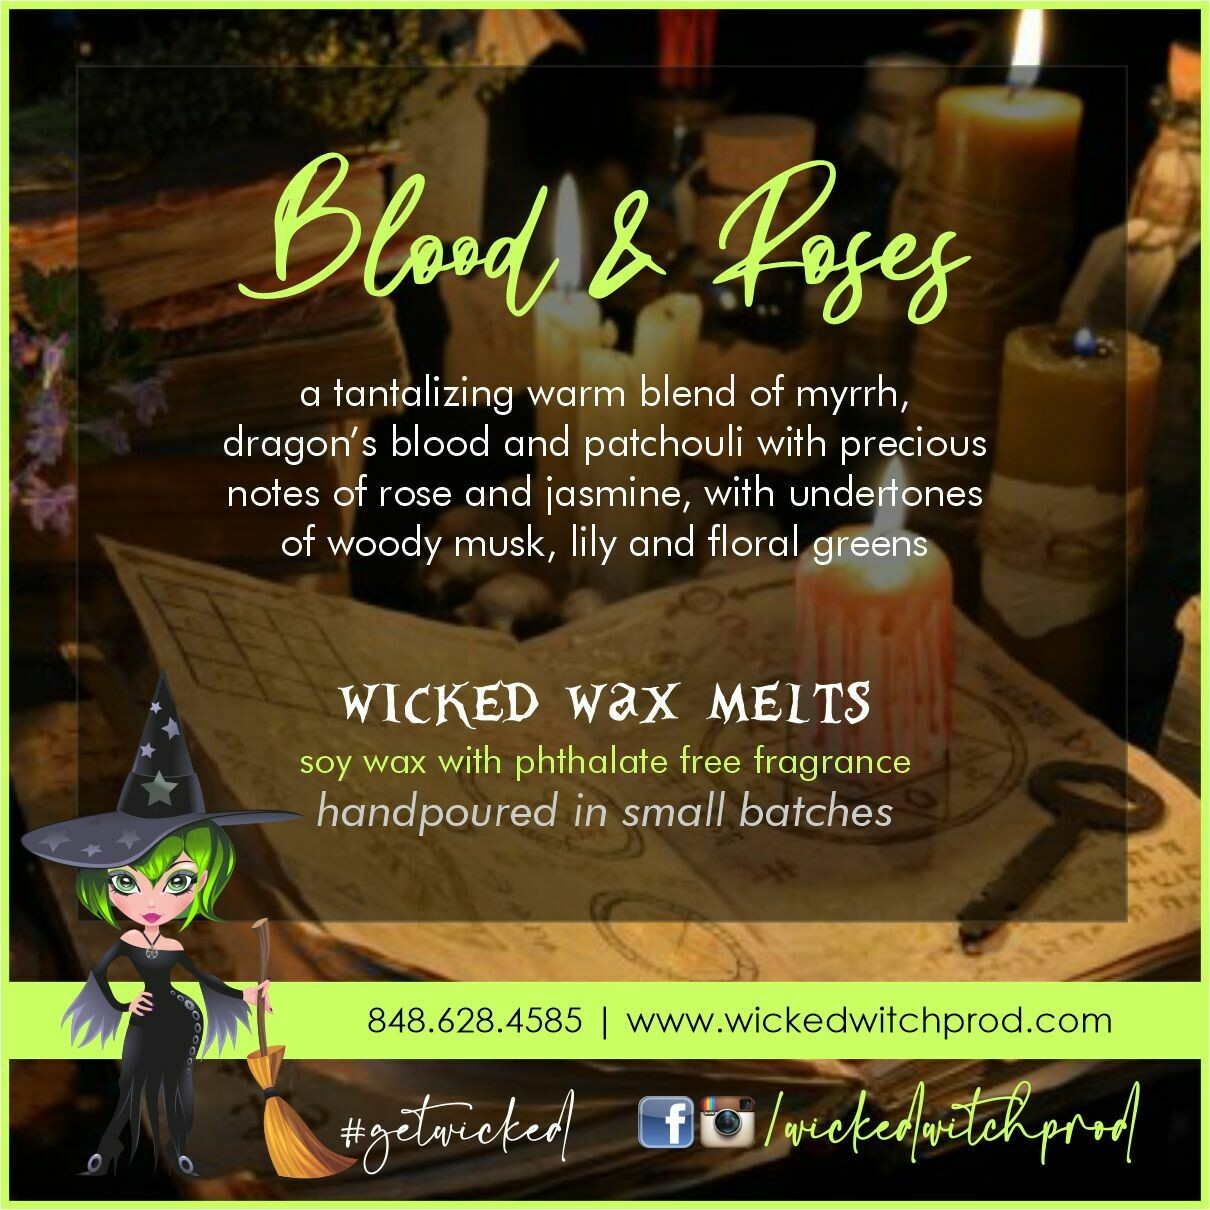 Blood & Roses Wicked Wax Melts